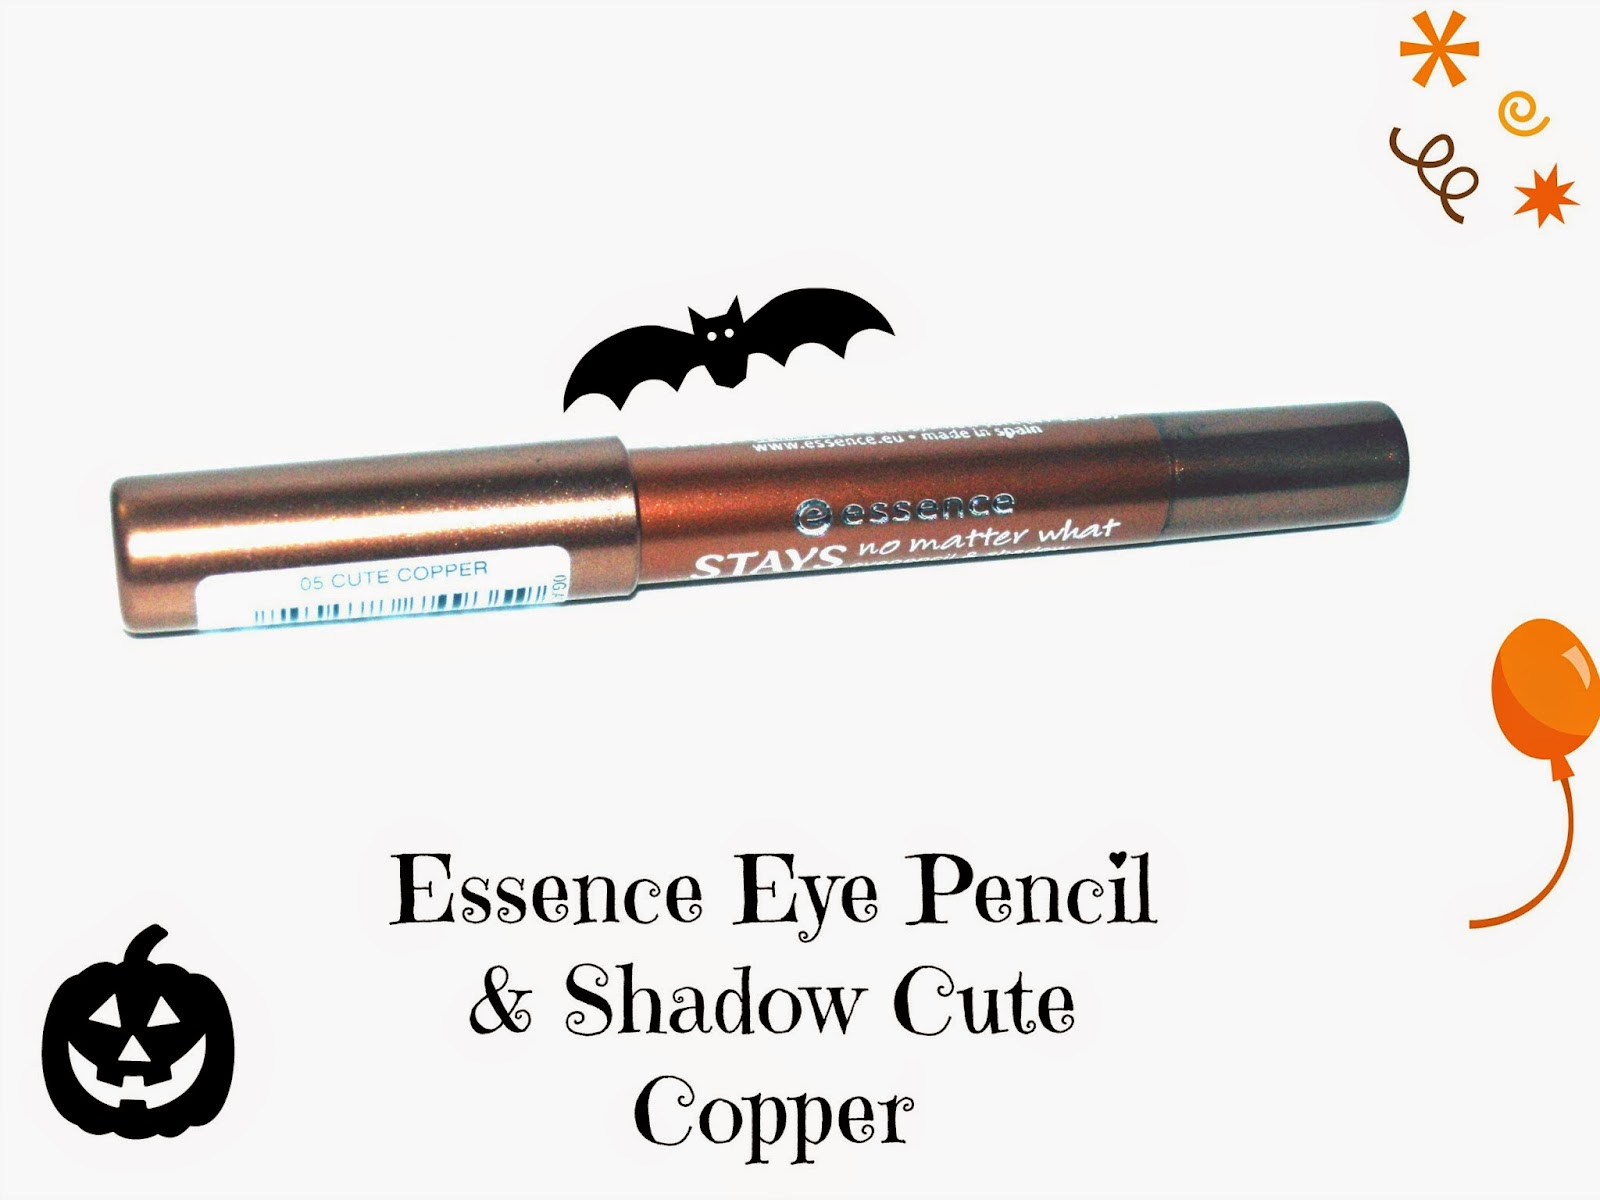 Essence Eye Pencil & Shadow Cute Copper Swatches